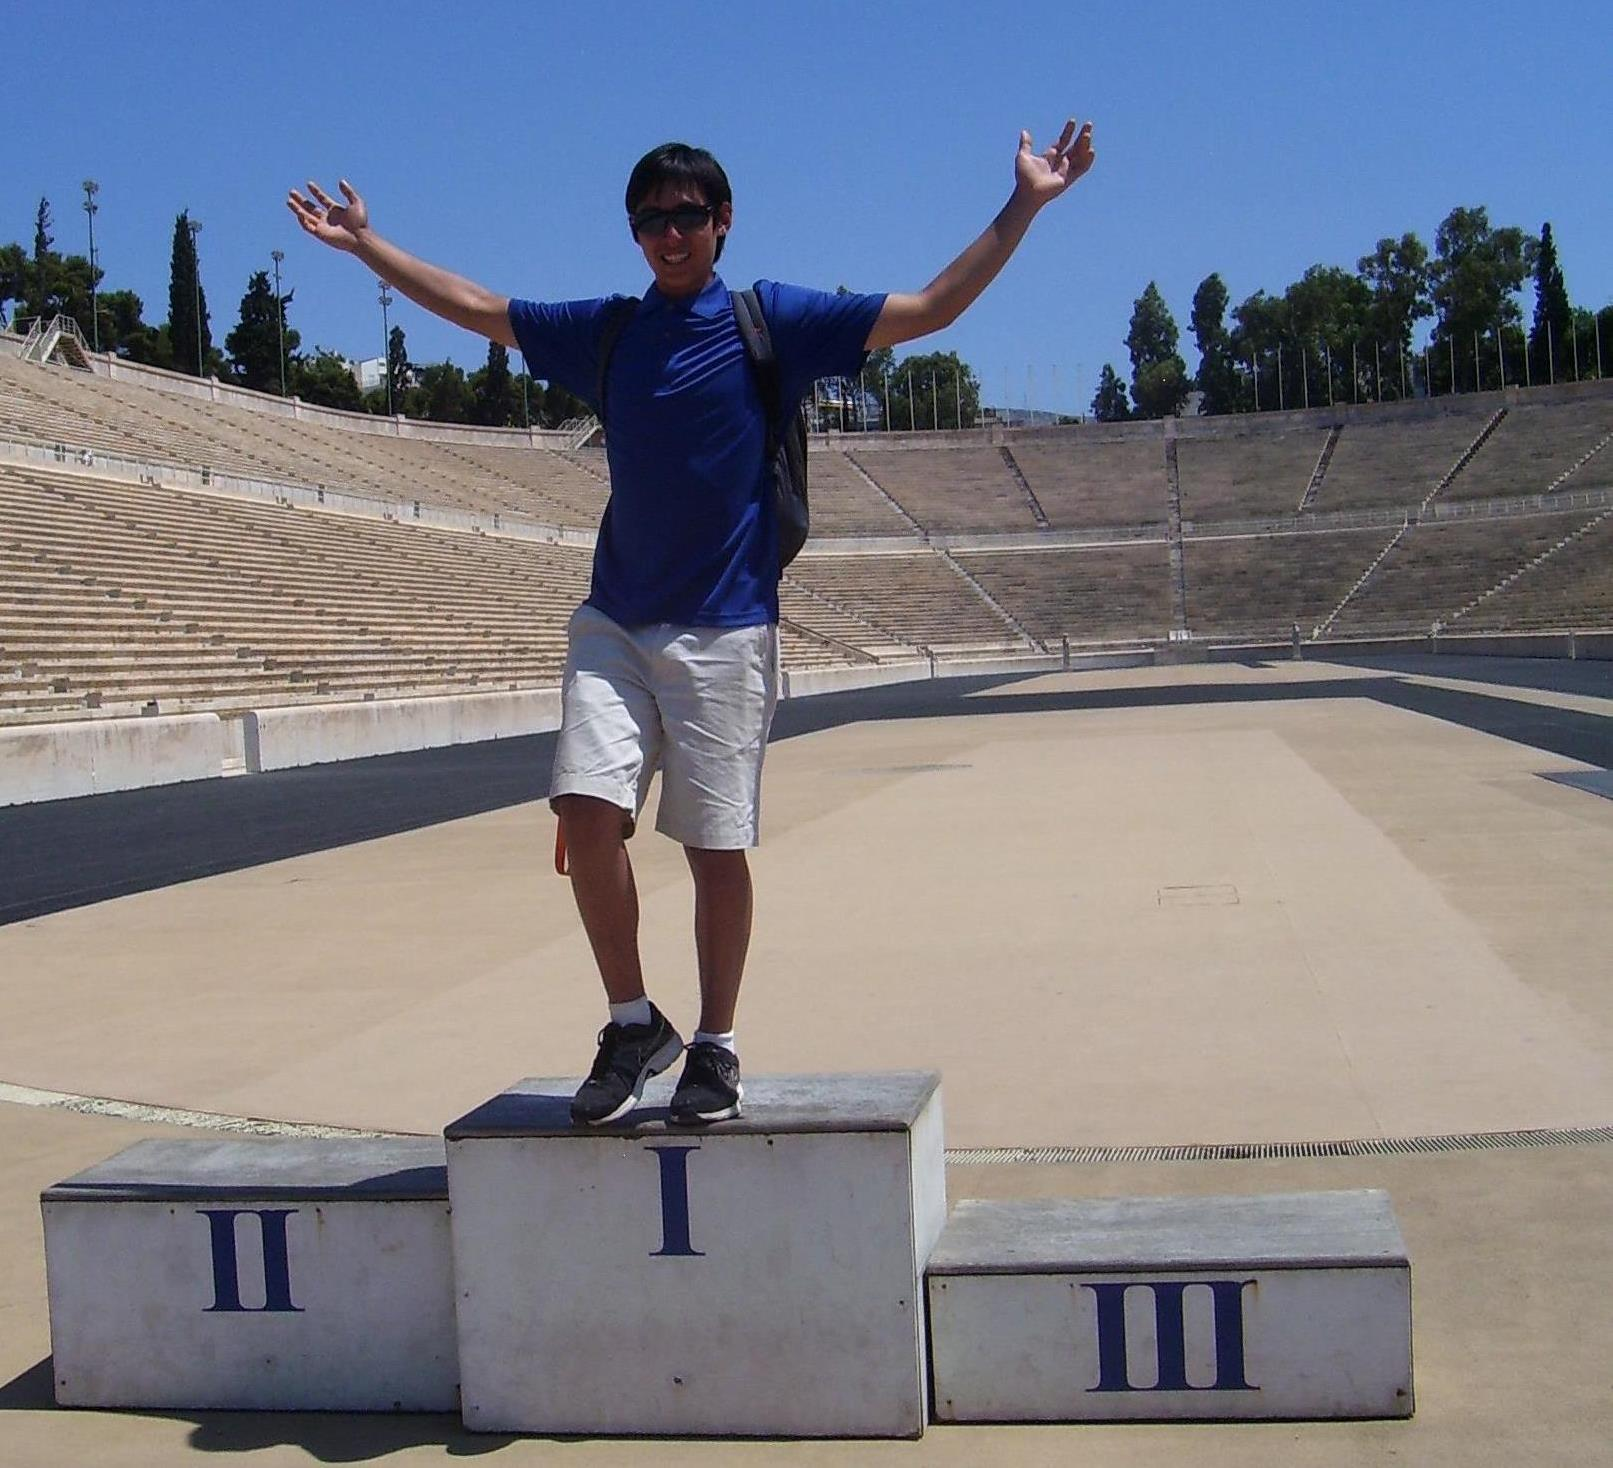 RoyAtPanathenaicStadium.jpg: